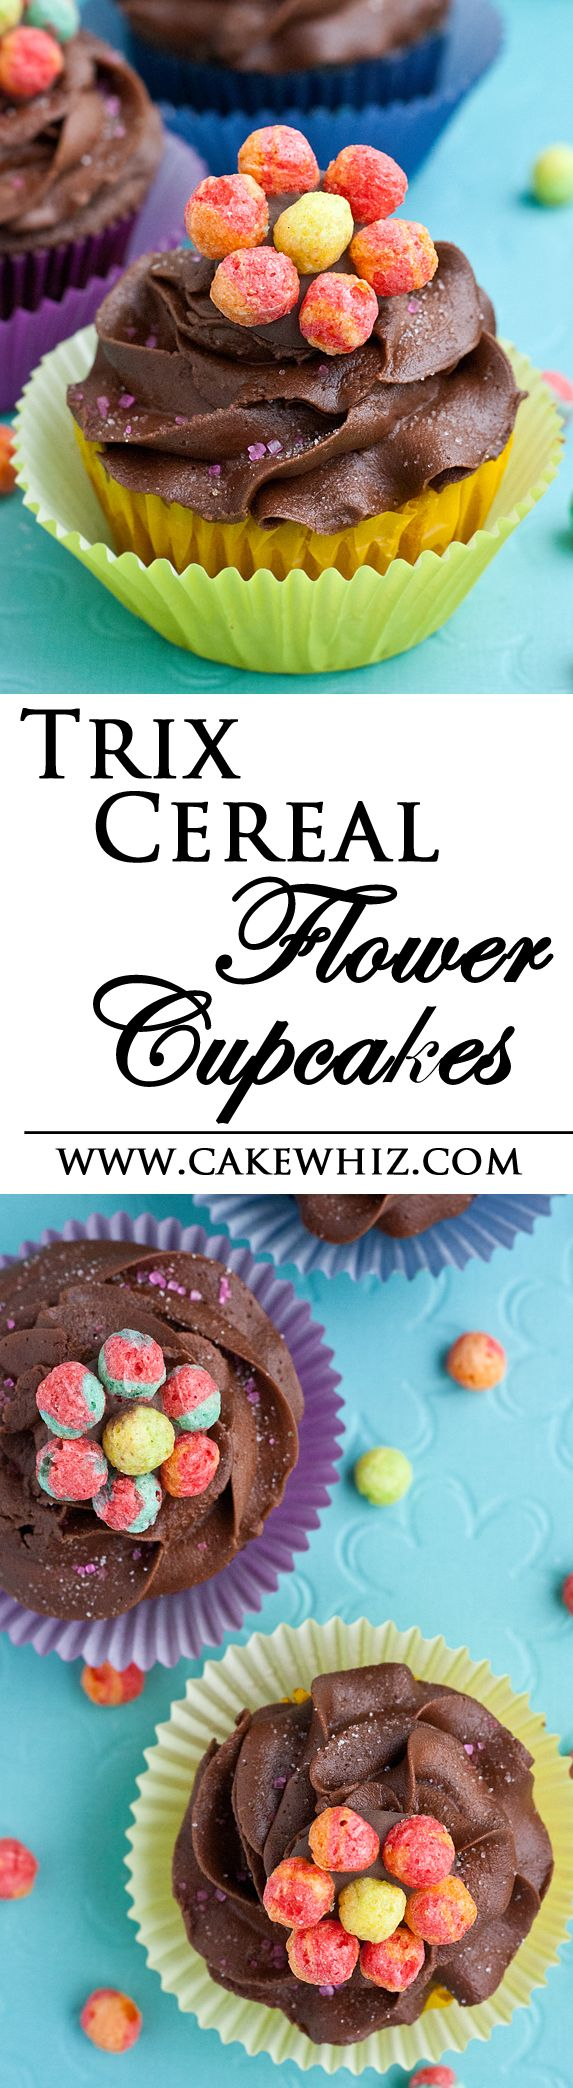 TRIX CEREAL FLOWER CUPCAKES... Fun and easy cupcakes for Spring time! Even kids can make them! From cakewhiz.com